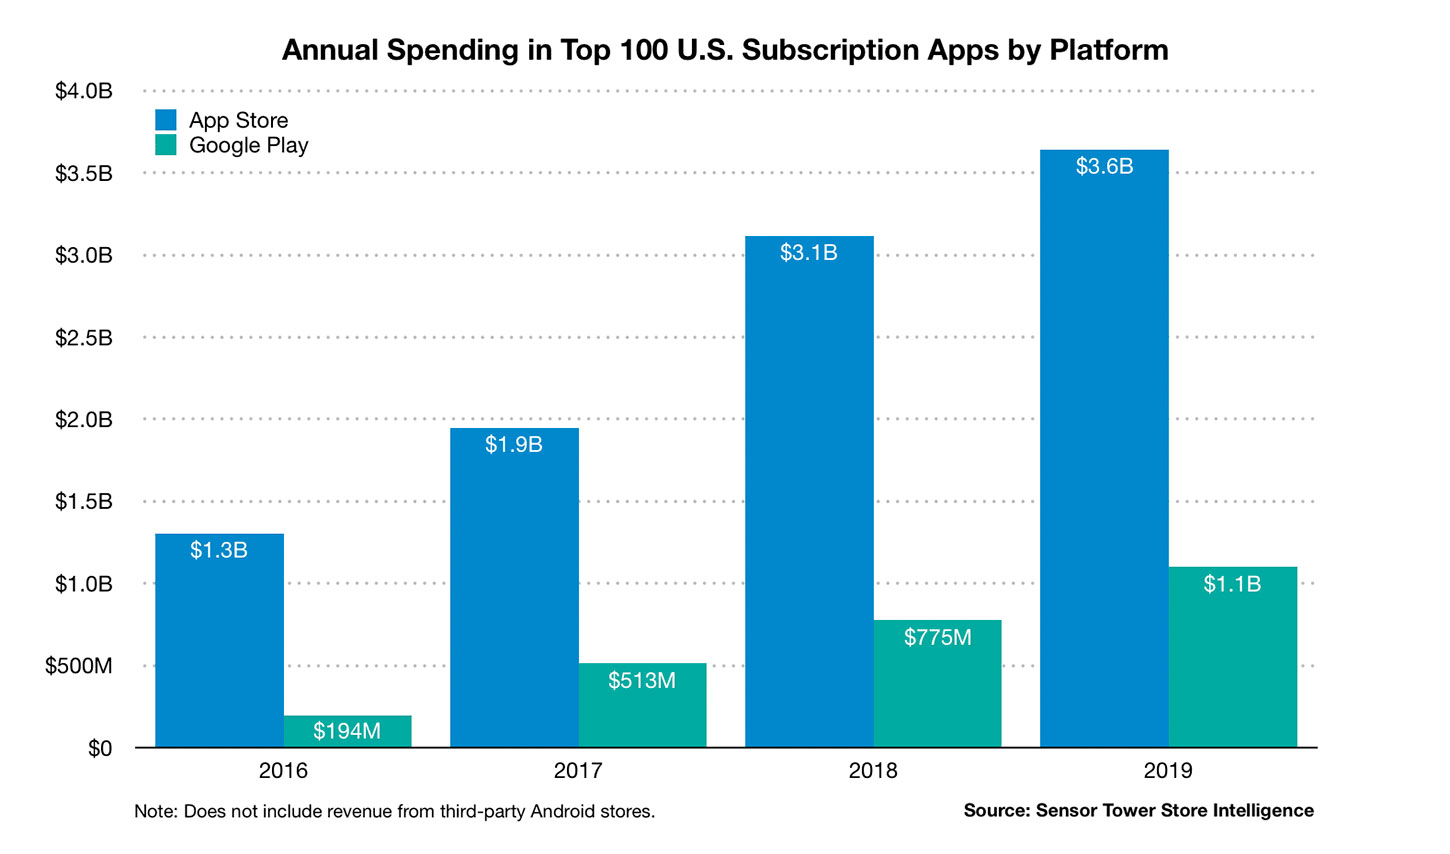 https://www.macfreak.nl/modules/news/images/zArt.annual-spending-top-100-united-states-subscription-apps-by-platform-2019.jpg